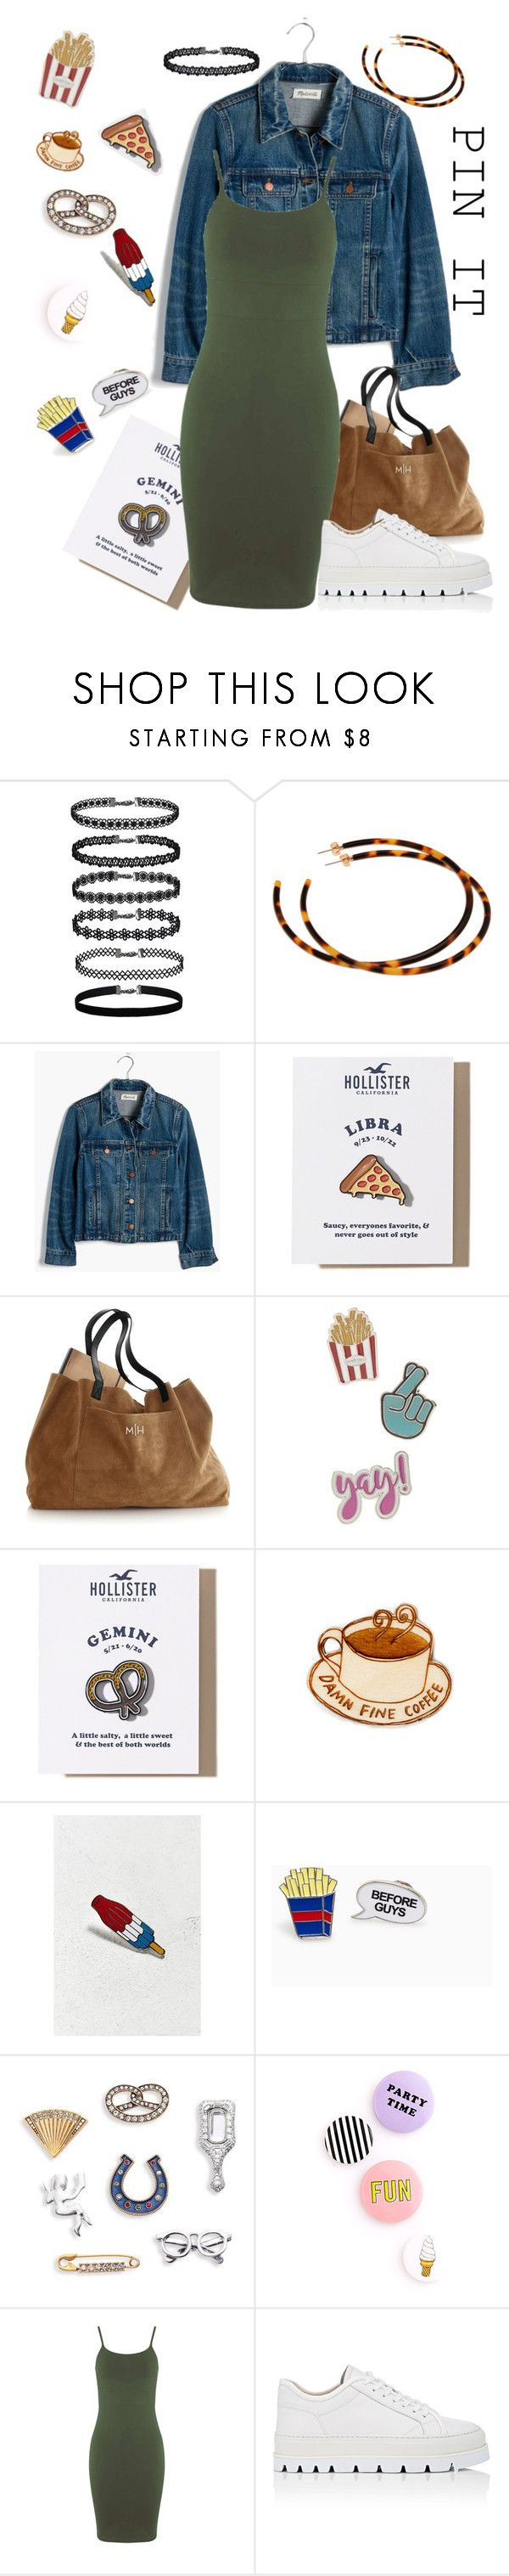 """Pin it, Press it !"" by stylezbyjaph ❤ liked on Polyvore featuring L. Erickson, Madewell, Hollister Co., Mark & Graham, Red Camel, Valley Cruise Press, Marc Jacobs, Miss Selfridge, MM6 Maison Margiela and pins"